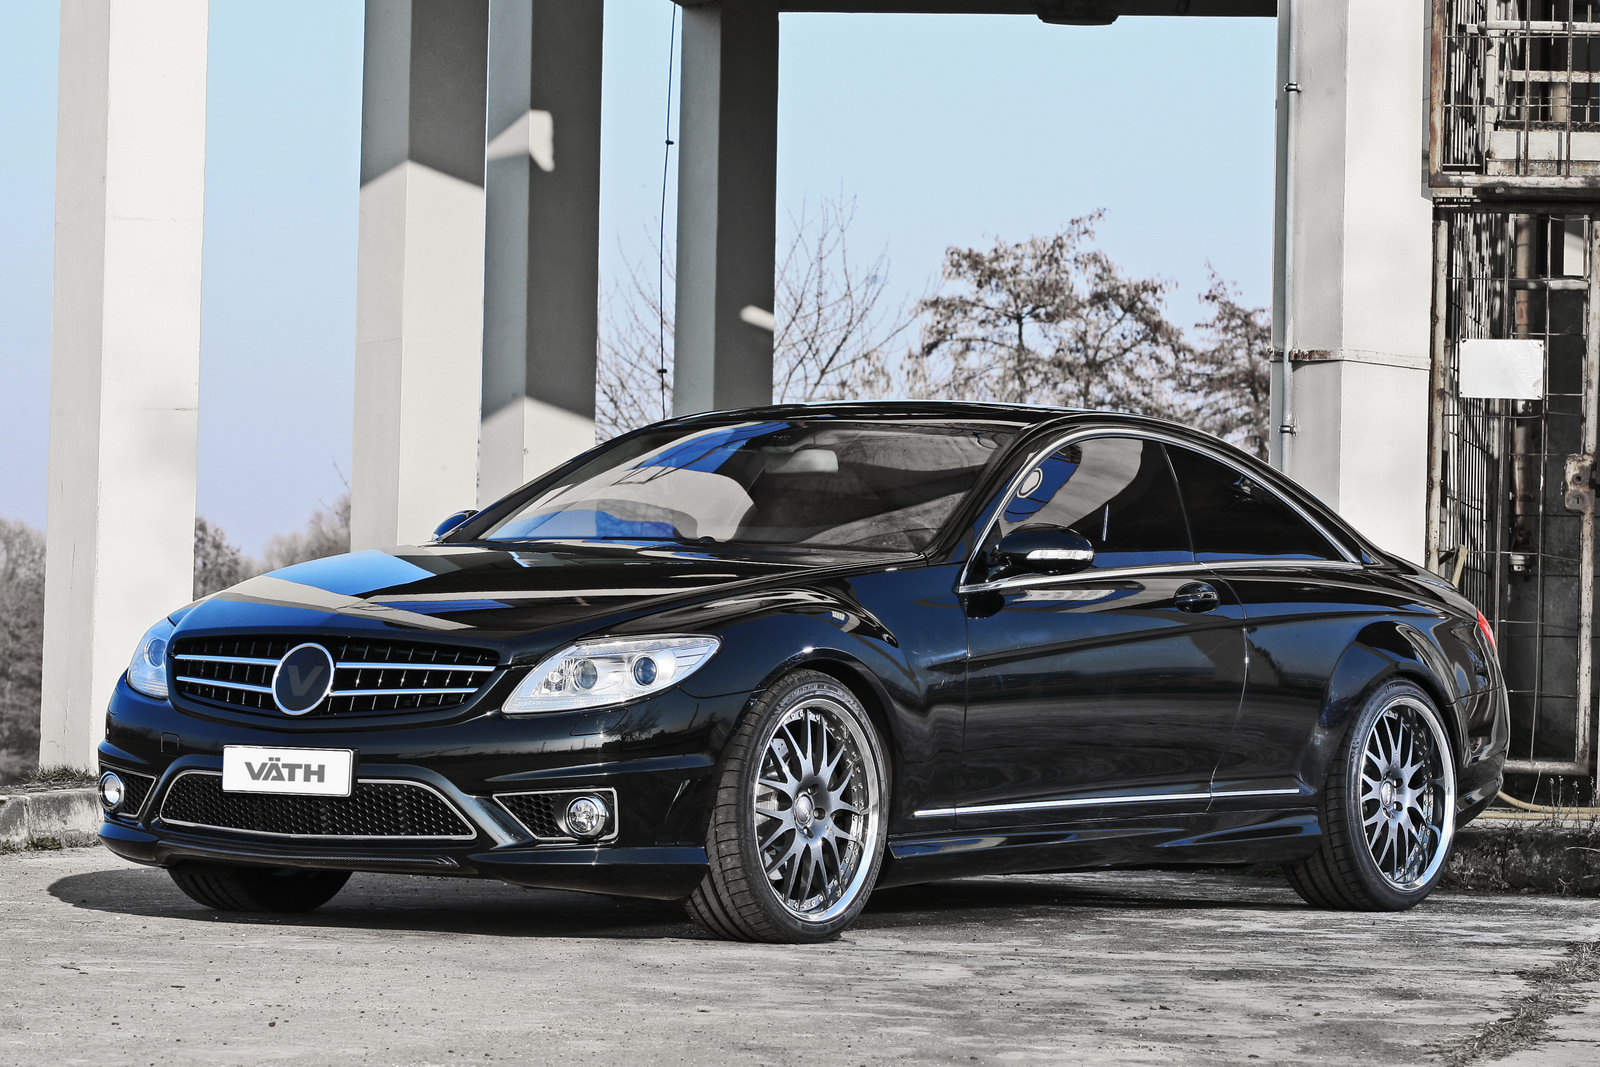 Vath to modify mercedes benz cl 500 coupe for Pictures of a mercedes benz